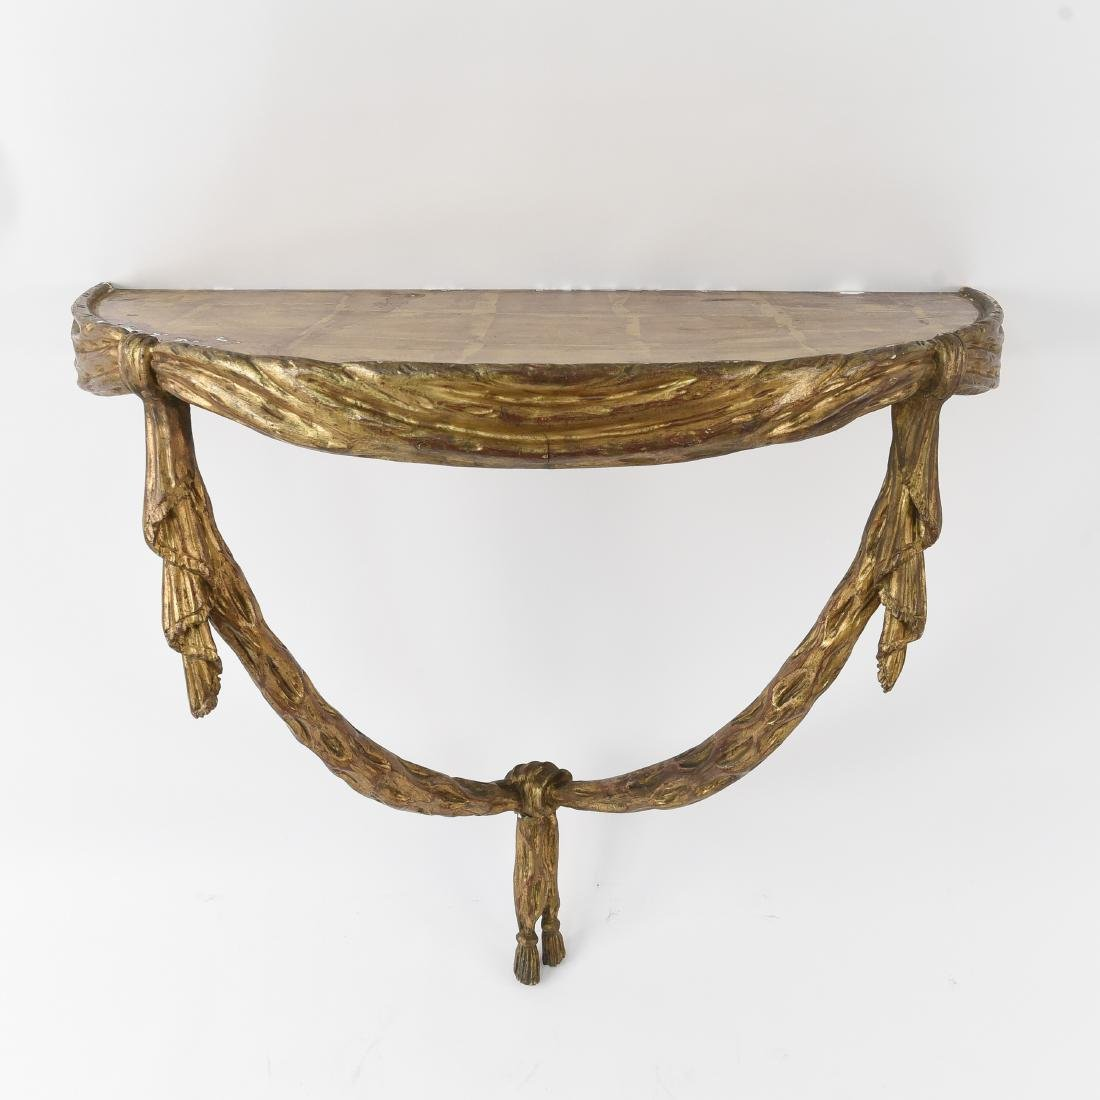 CARVED GILTWOOD SWAG WALL MOUNT CONSOLE